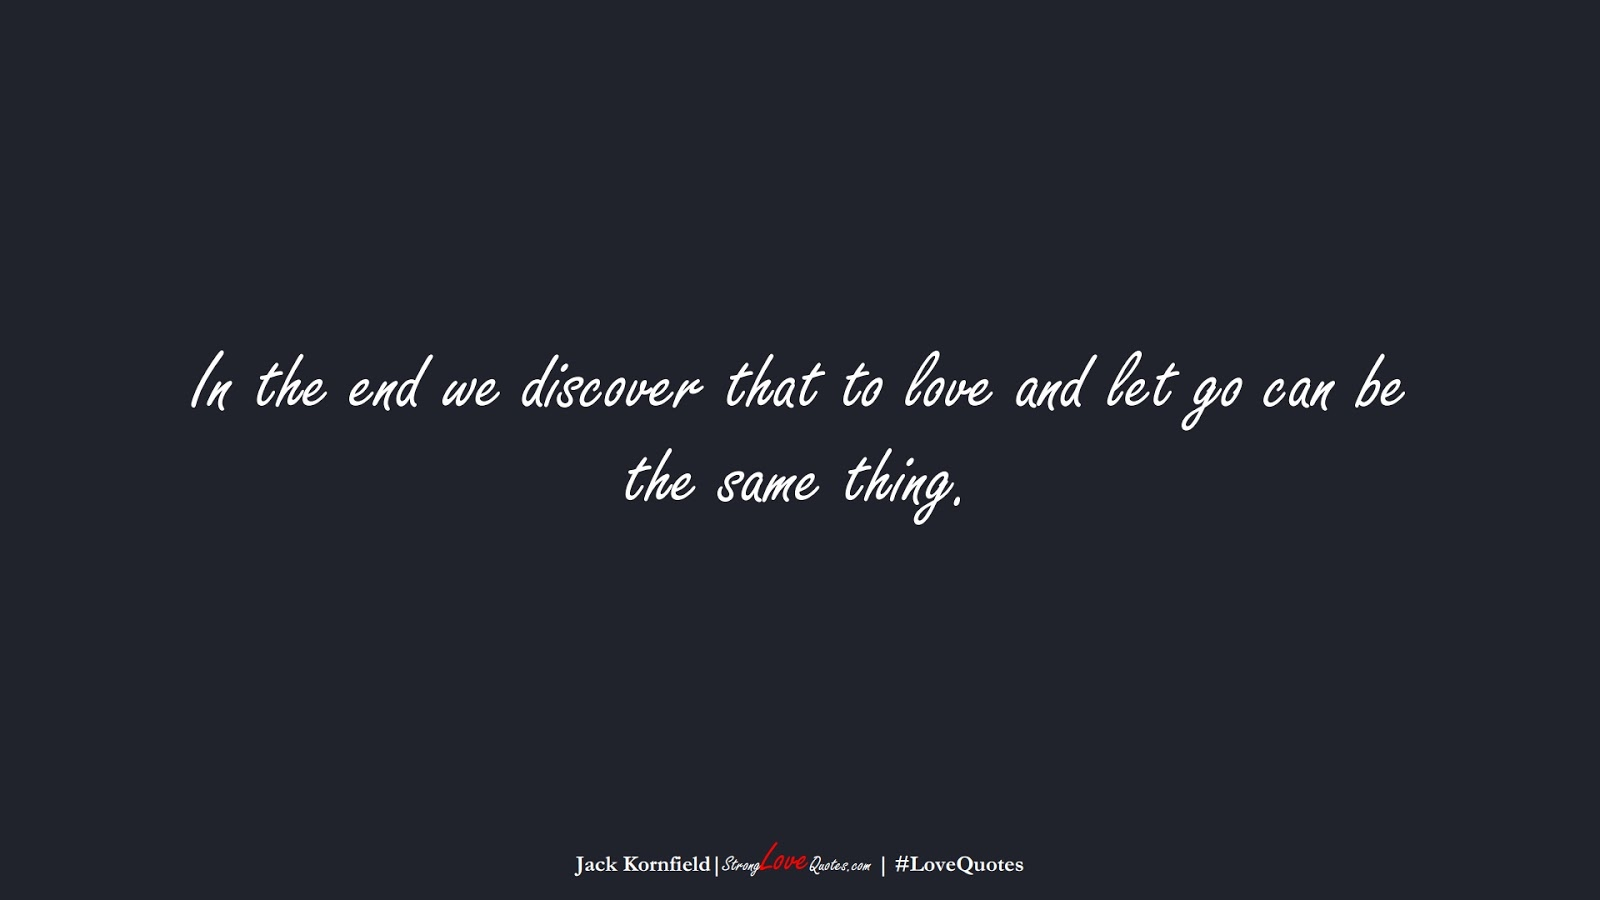 In the end we discover that to love and let go can be the same thing. (Jack Kornfield);  #LoveQuotes